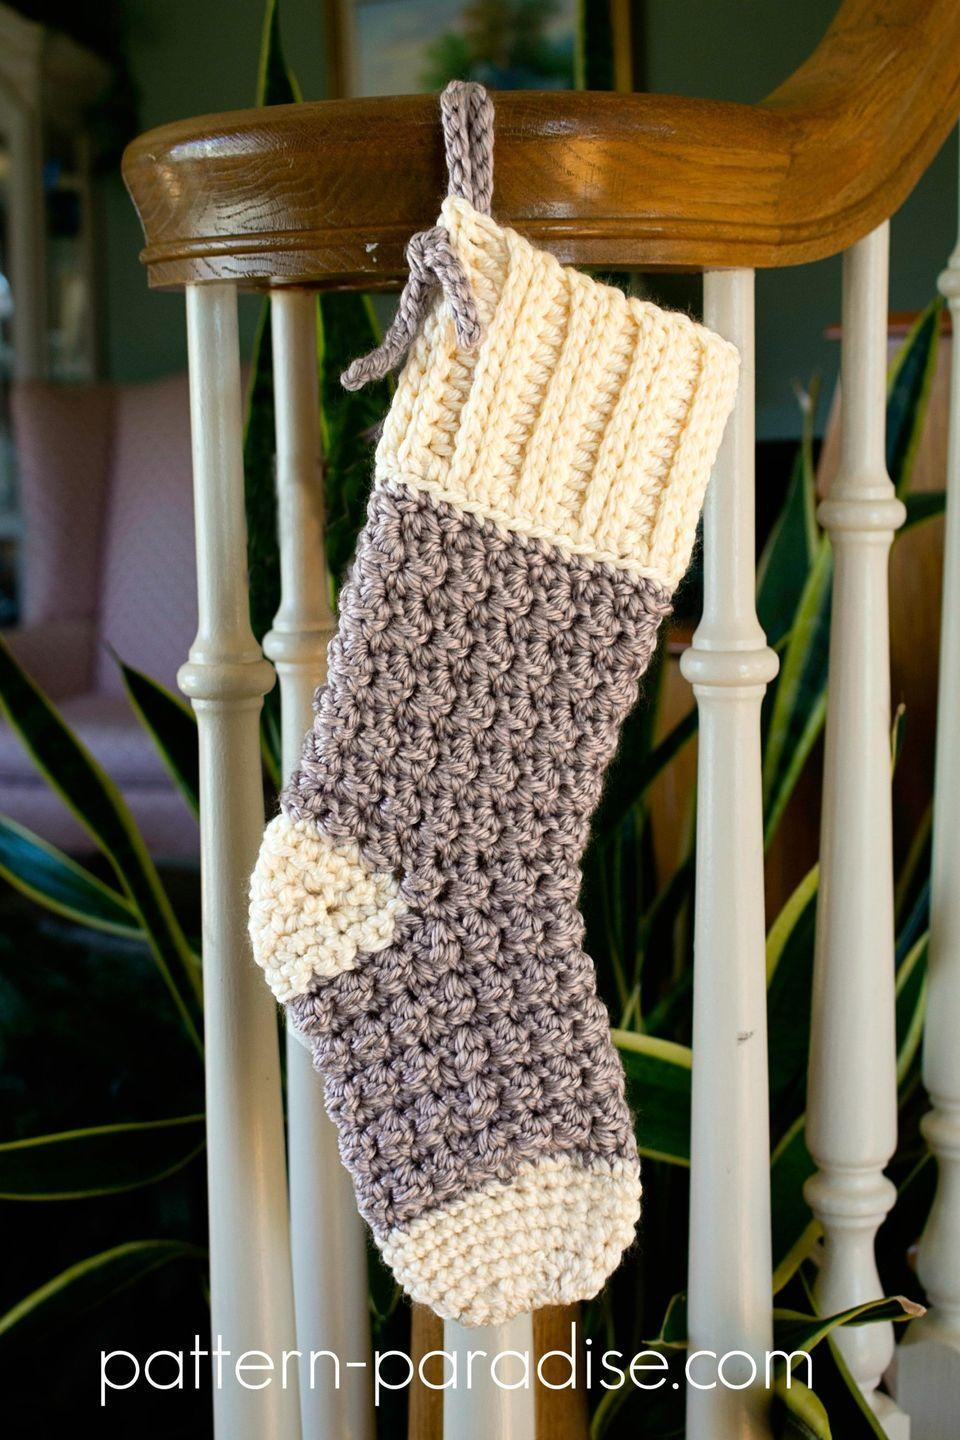 """<p>This simple, yet modern, stocking is the understated touch your mantel needs this Christmas.</p><p><strong>Get the tutorial at <a href=""""https://pattern-paradise.com/2017/12/04/free-crochet-pattern-cozy-cottage-christmas-stocking/"""" rel=""""nofollow noopener"""" target=""""_blank"""" data-ylk=""""slk:Pattern Paradise"""" class=""""link rapid-noclick-resp"""">Pattern Paradise</a>.</strong></p><p><strong><a class=""""link rapid-noclick-resp"""" href=""""https://www.amazon.com/Clover-3672-Amour-Crochet-sizes/dp/B00B2CCA6W/ref=sr_1_3?tag=syn-yahoo-20&ascsubtag=%5Bartid%7C10050.g.28872655%5Bsrc%7Cyahoo-us"""" rel=""""nofollow noopener"""" target=""""_blank"""" data-ylk=""""slk:SHOP CROCHET HOOKS"""">SHOP CROCHET HOOKS</a><br></strong></p>"""